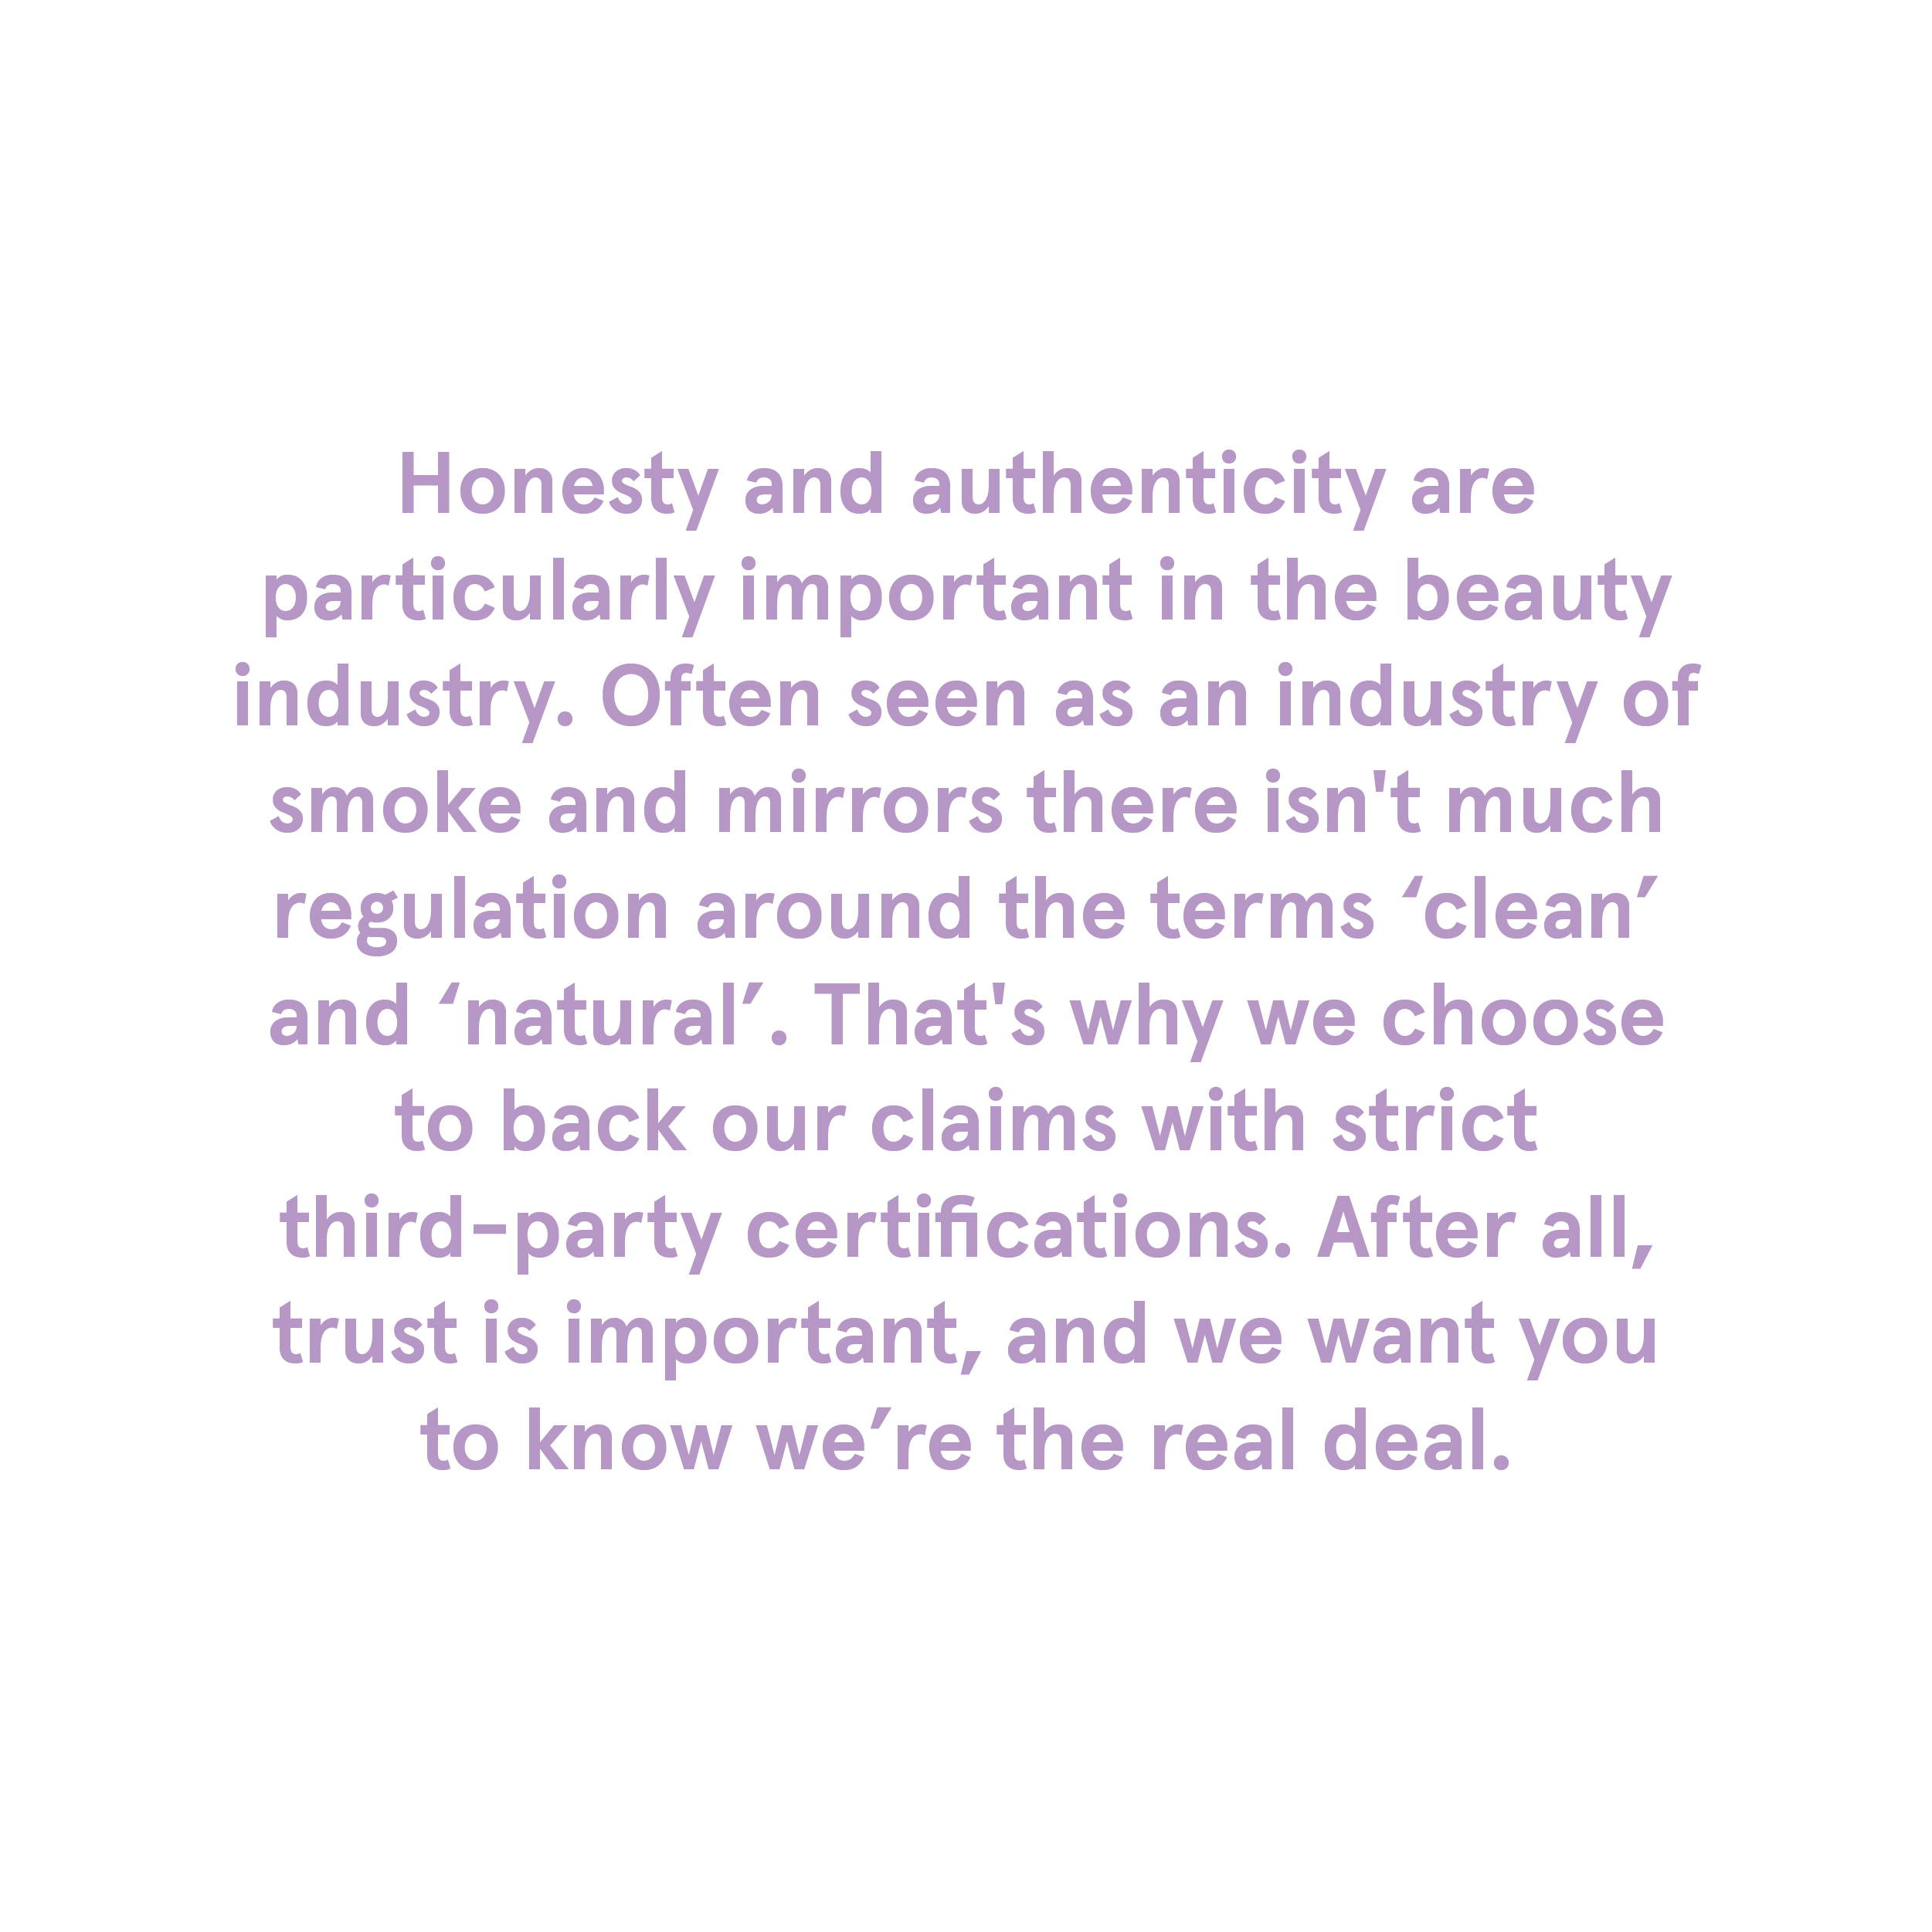 Honesty and authenticity are particularly important in the beauty industry. Often seen as an industry of smoke and mirrors there isn't much regulation around the terms 'clean' and 'natural'. That's why we choose to back our claims with strict third-party certifications. After all, trust is important, and we want you to know we're the real deal.